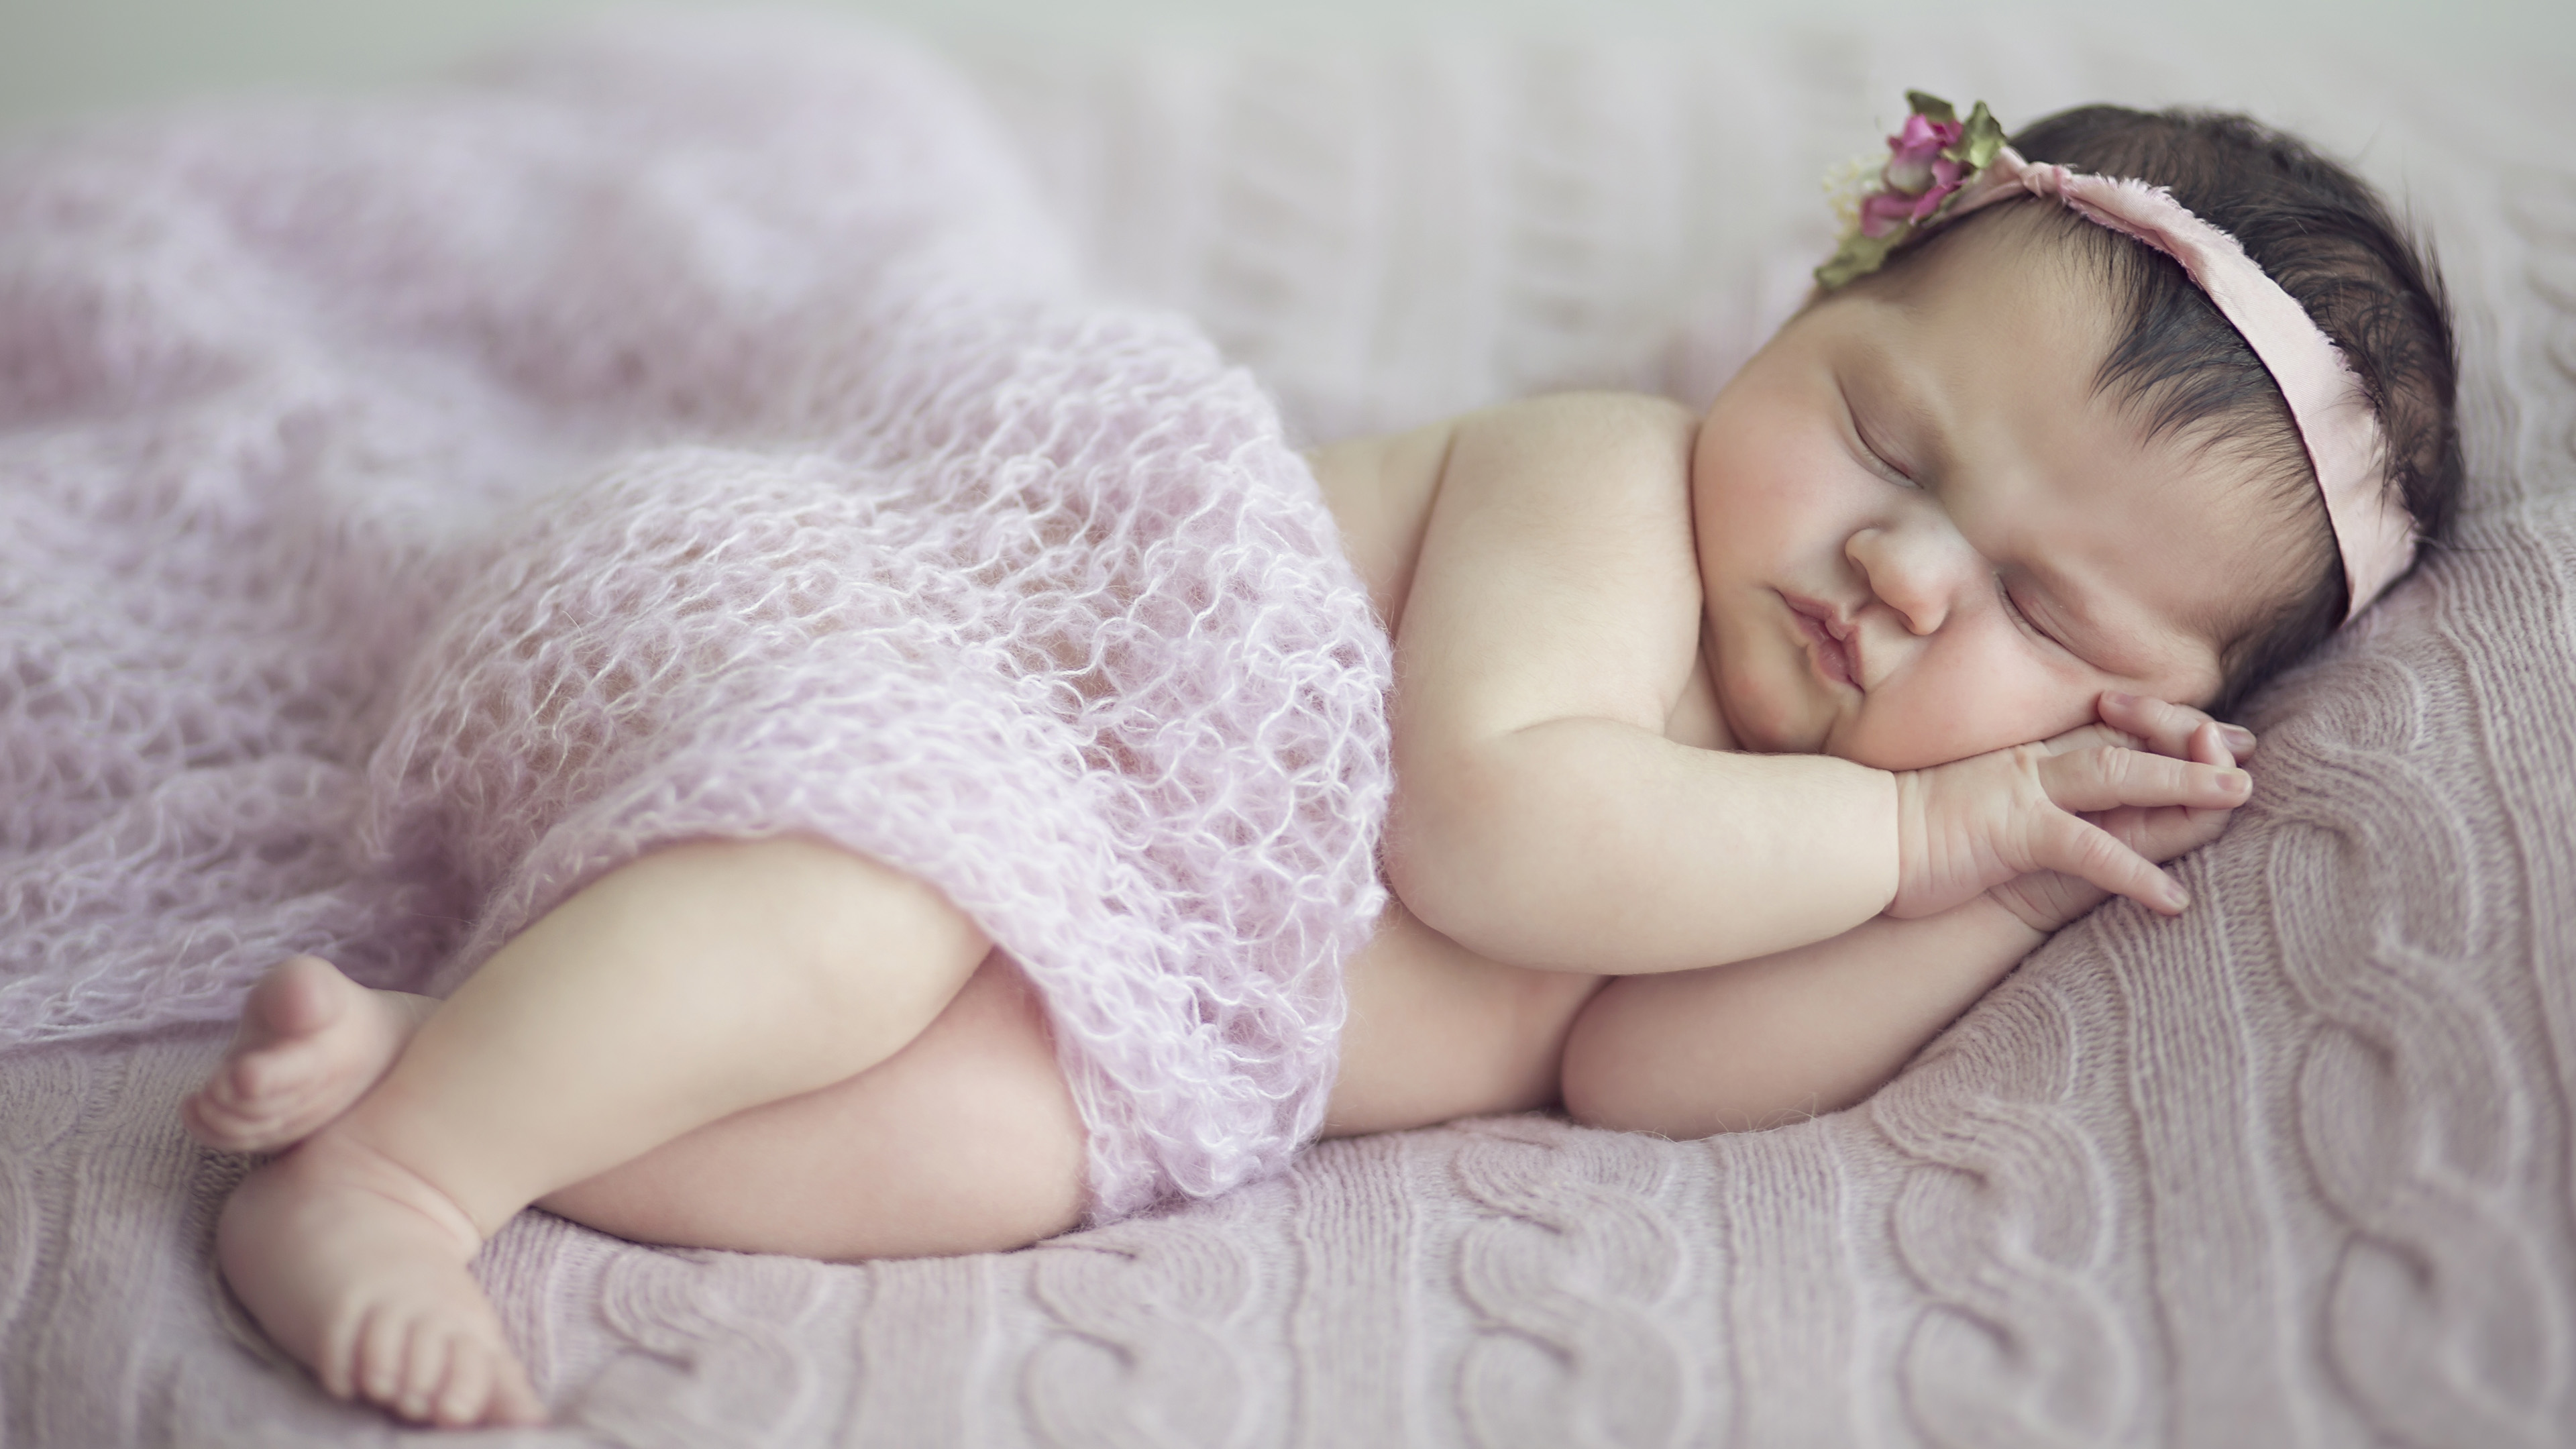 New Baby Girl Wallpaper In 4k Hd Wallpapers Wallpapers Download High Resolution Wallpapers